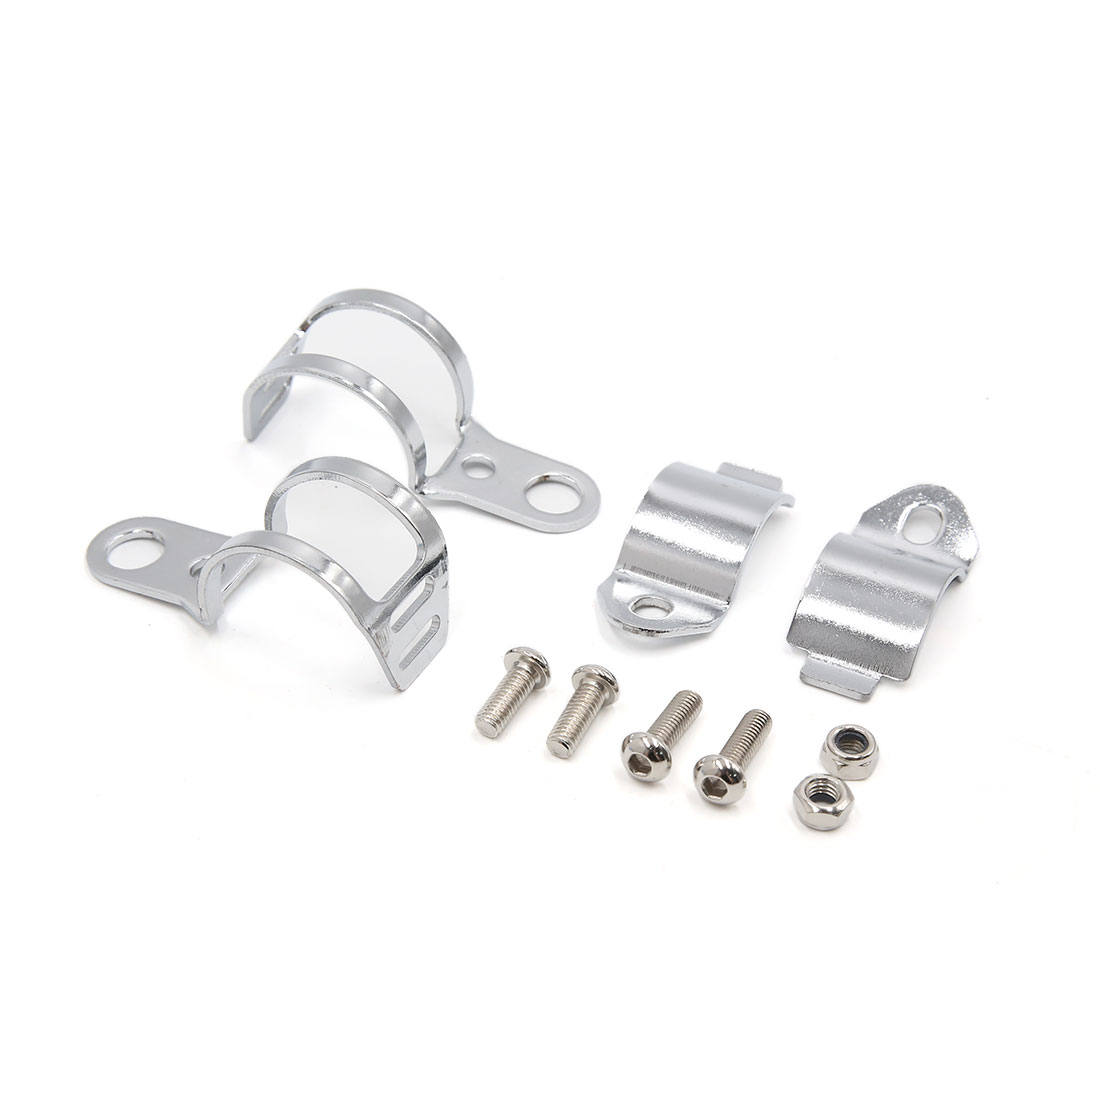 2Pcs Silver Tone Turn Signal Light Lamp Fork Clamp Mount Holder Bracket for Motorcycle